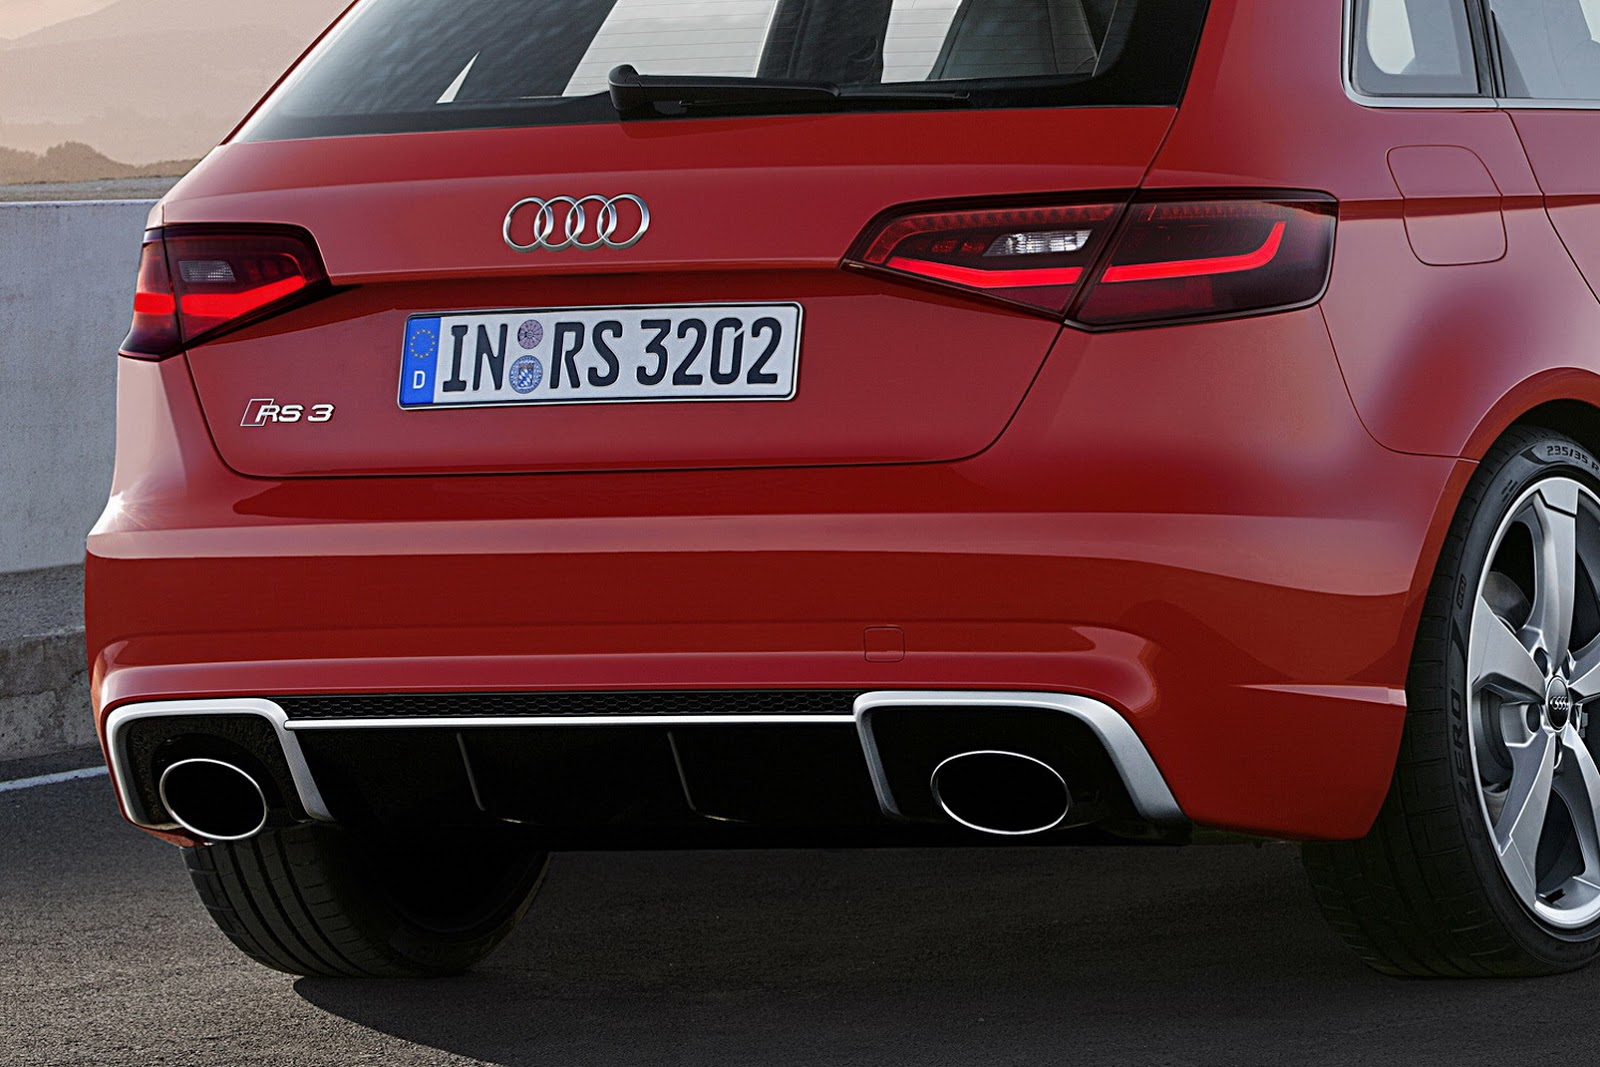 Audi's New Spicy Hot RS3 Sportback Has a 362HP 2.5-Liter ...